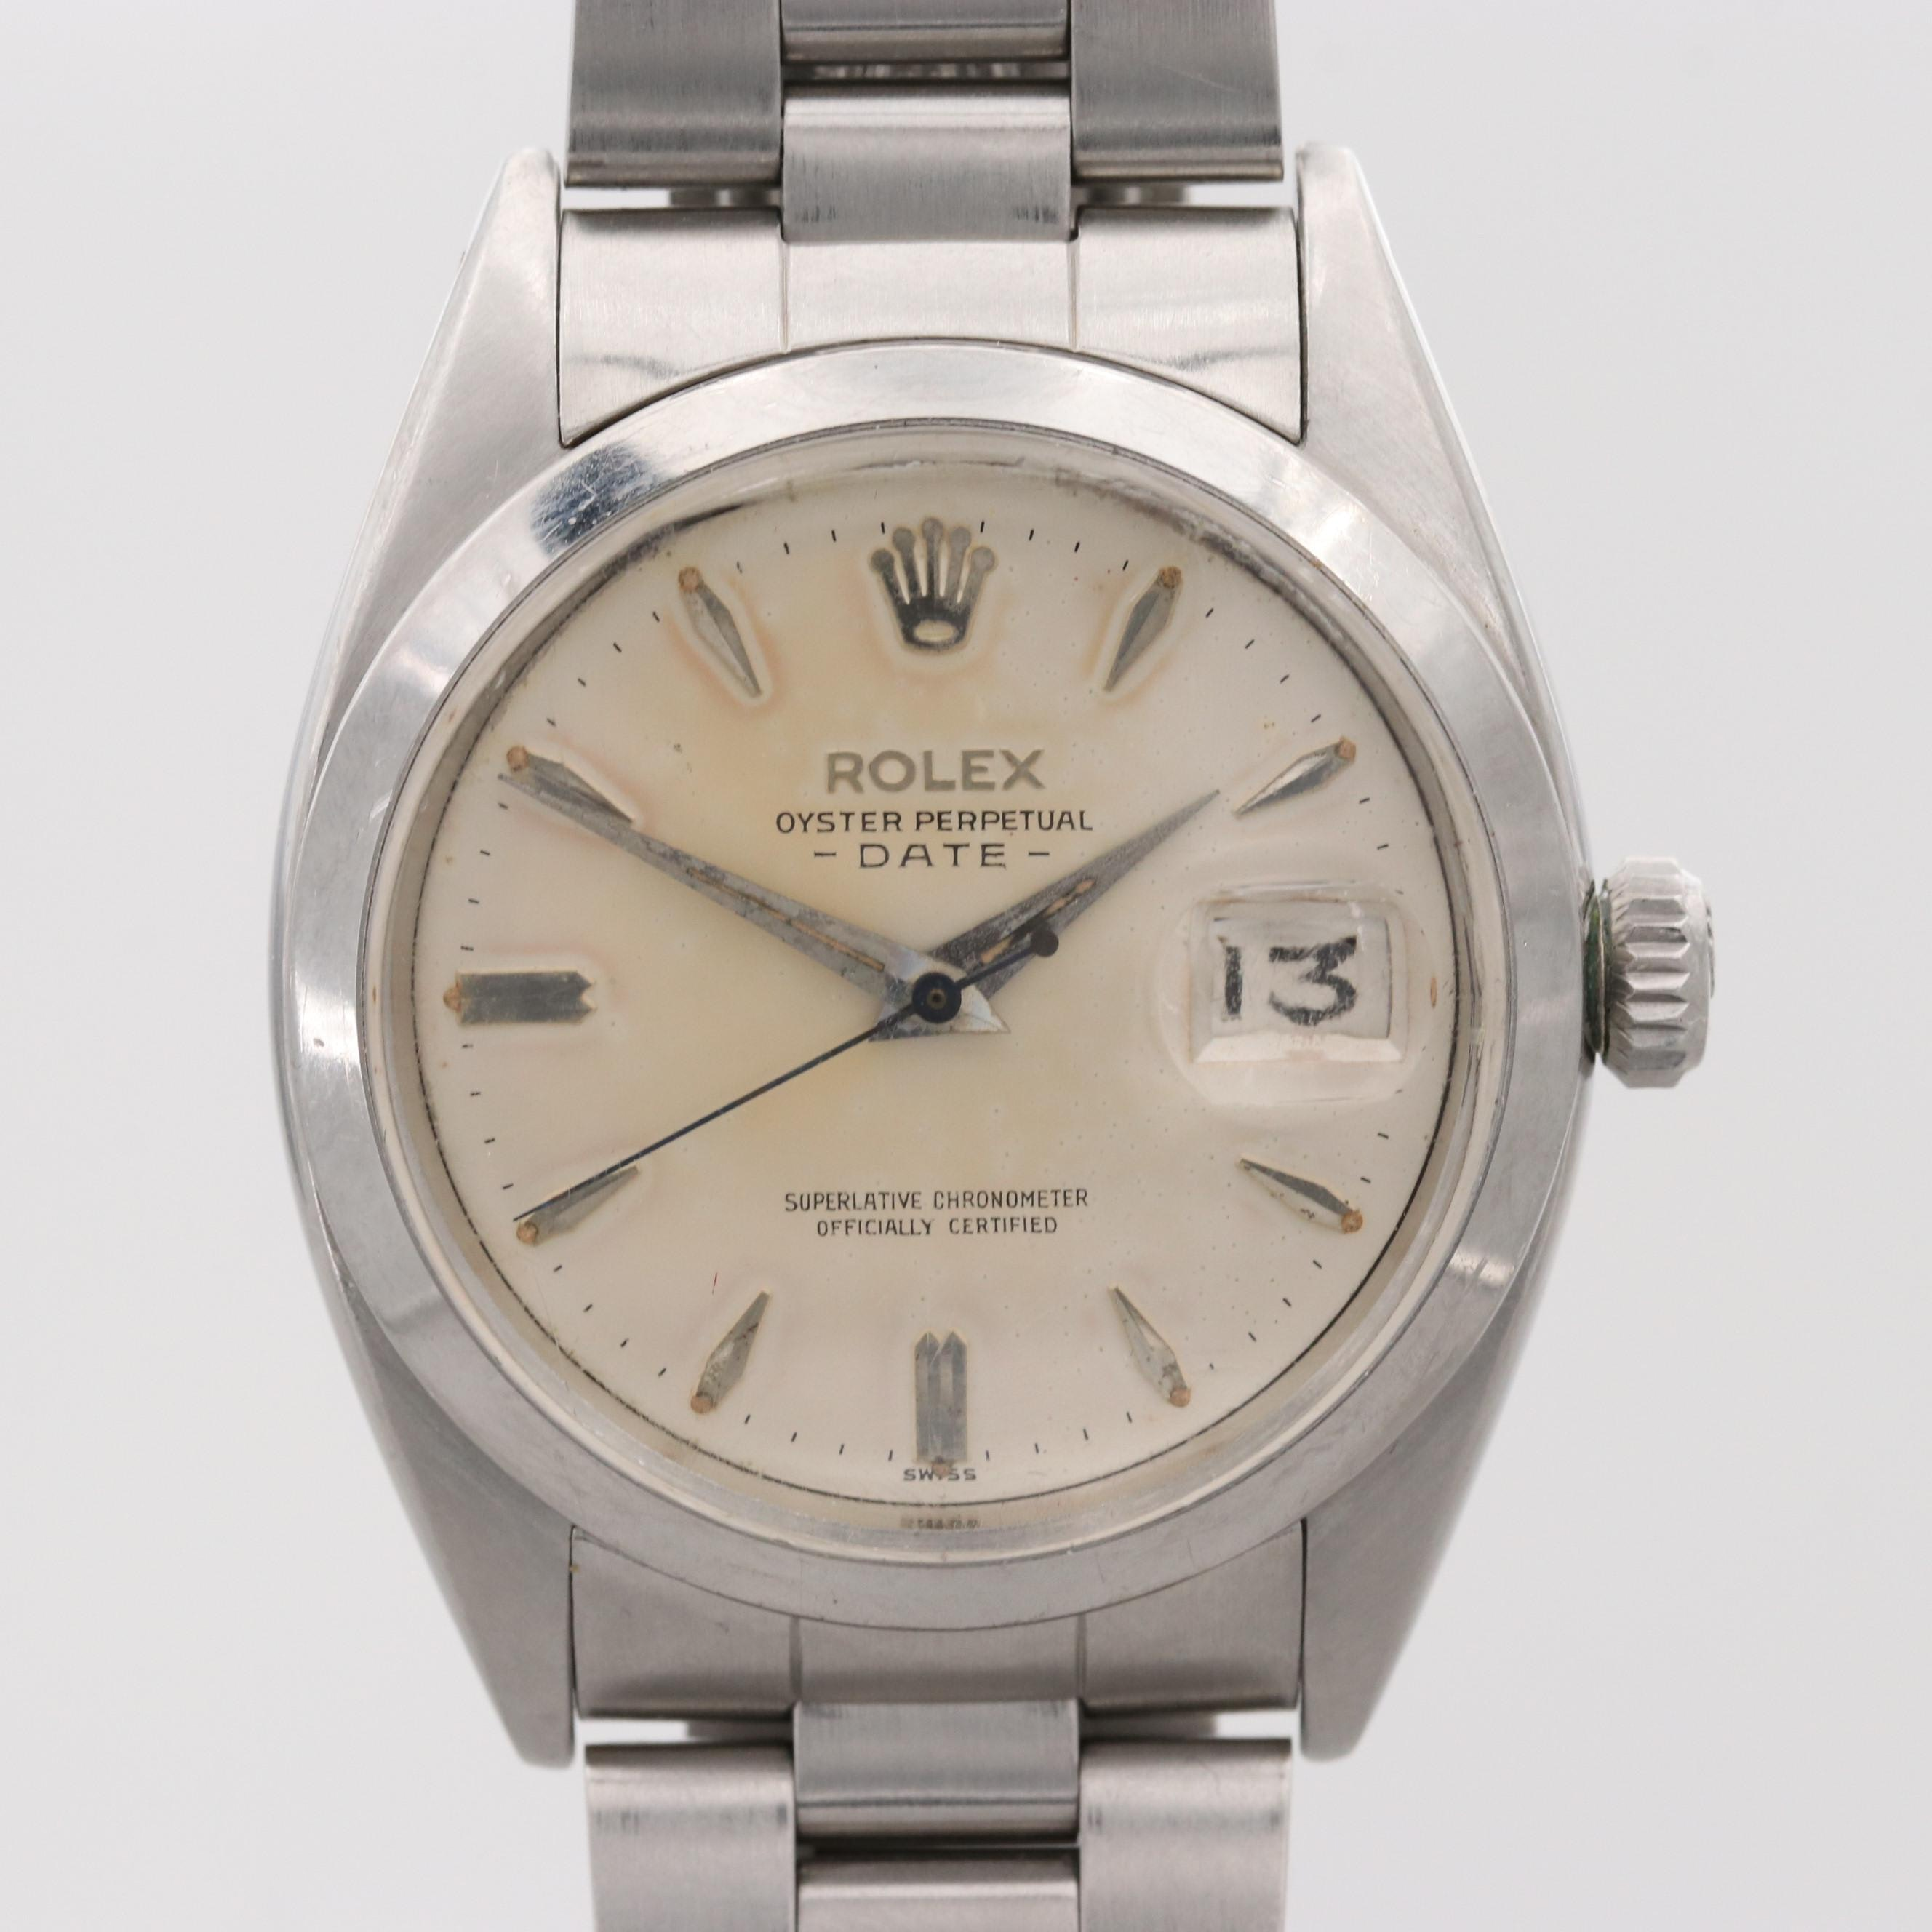 Vintage Rolex Oyster Perpetual Stainless Steel Automatic Wristwatch With Date